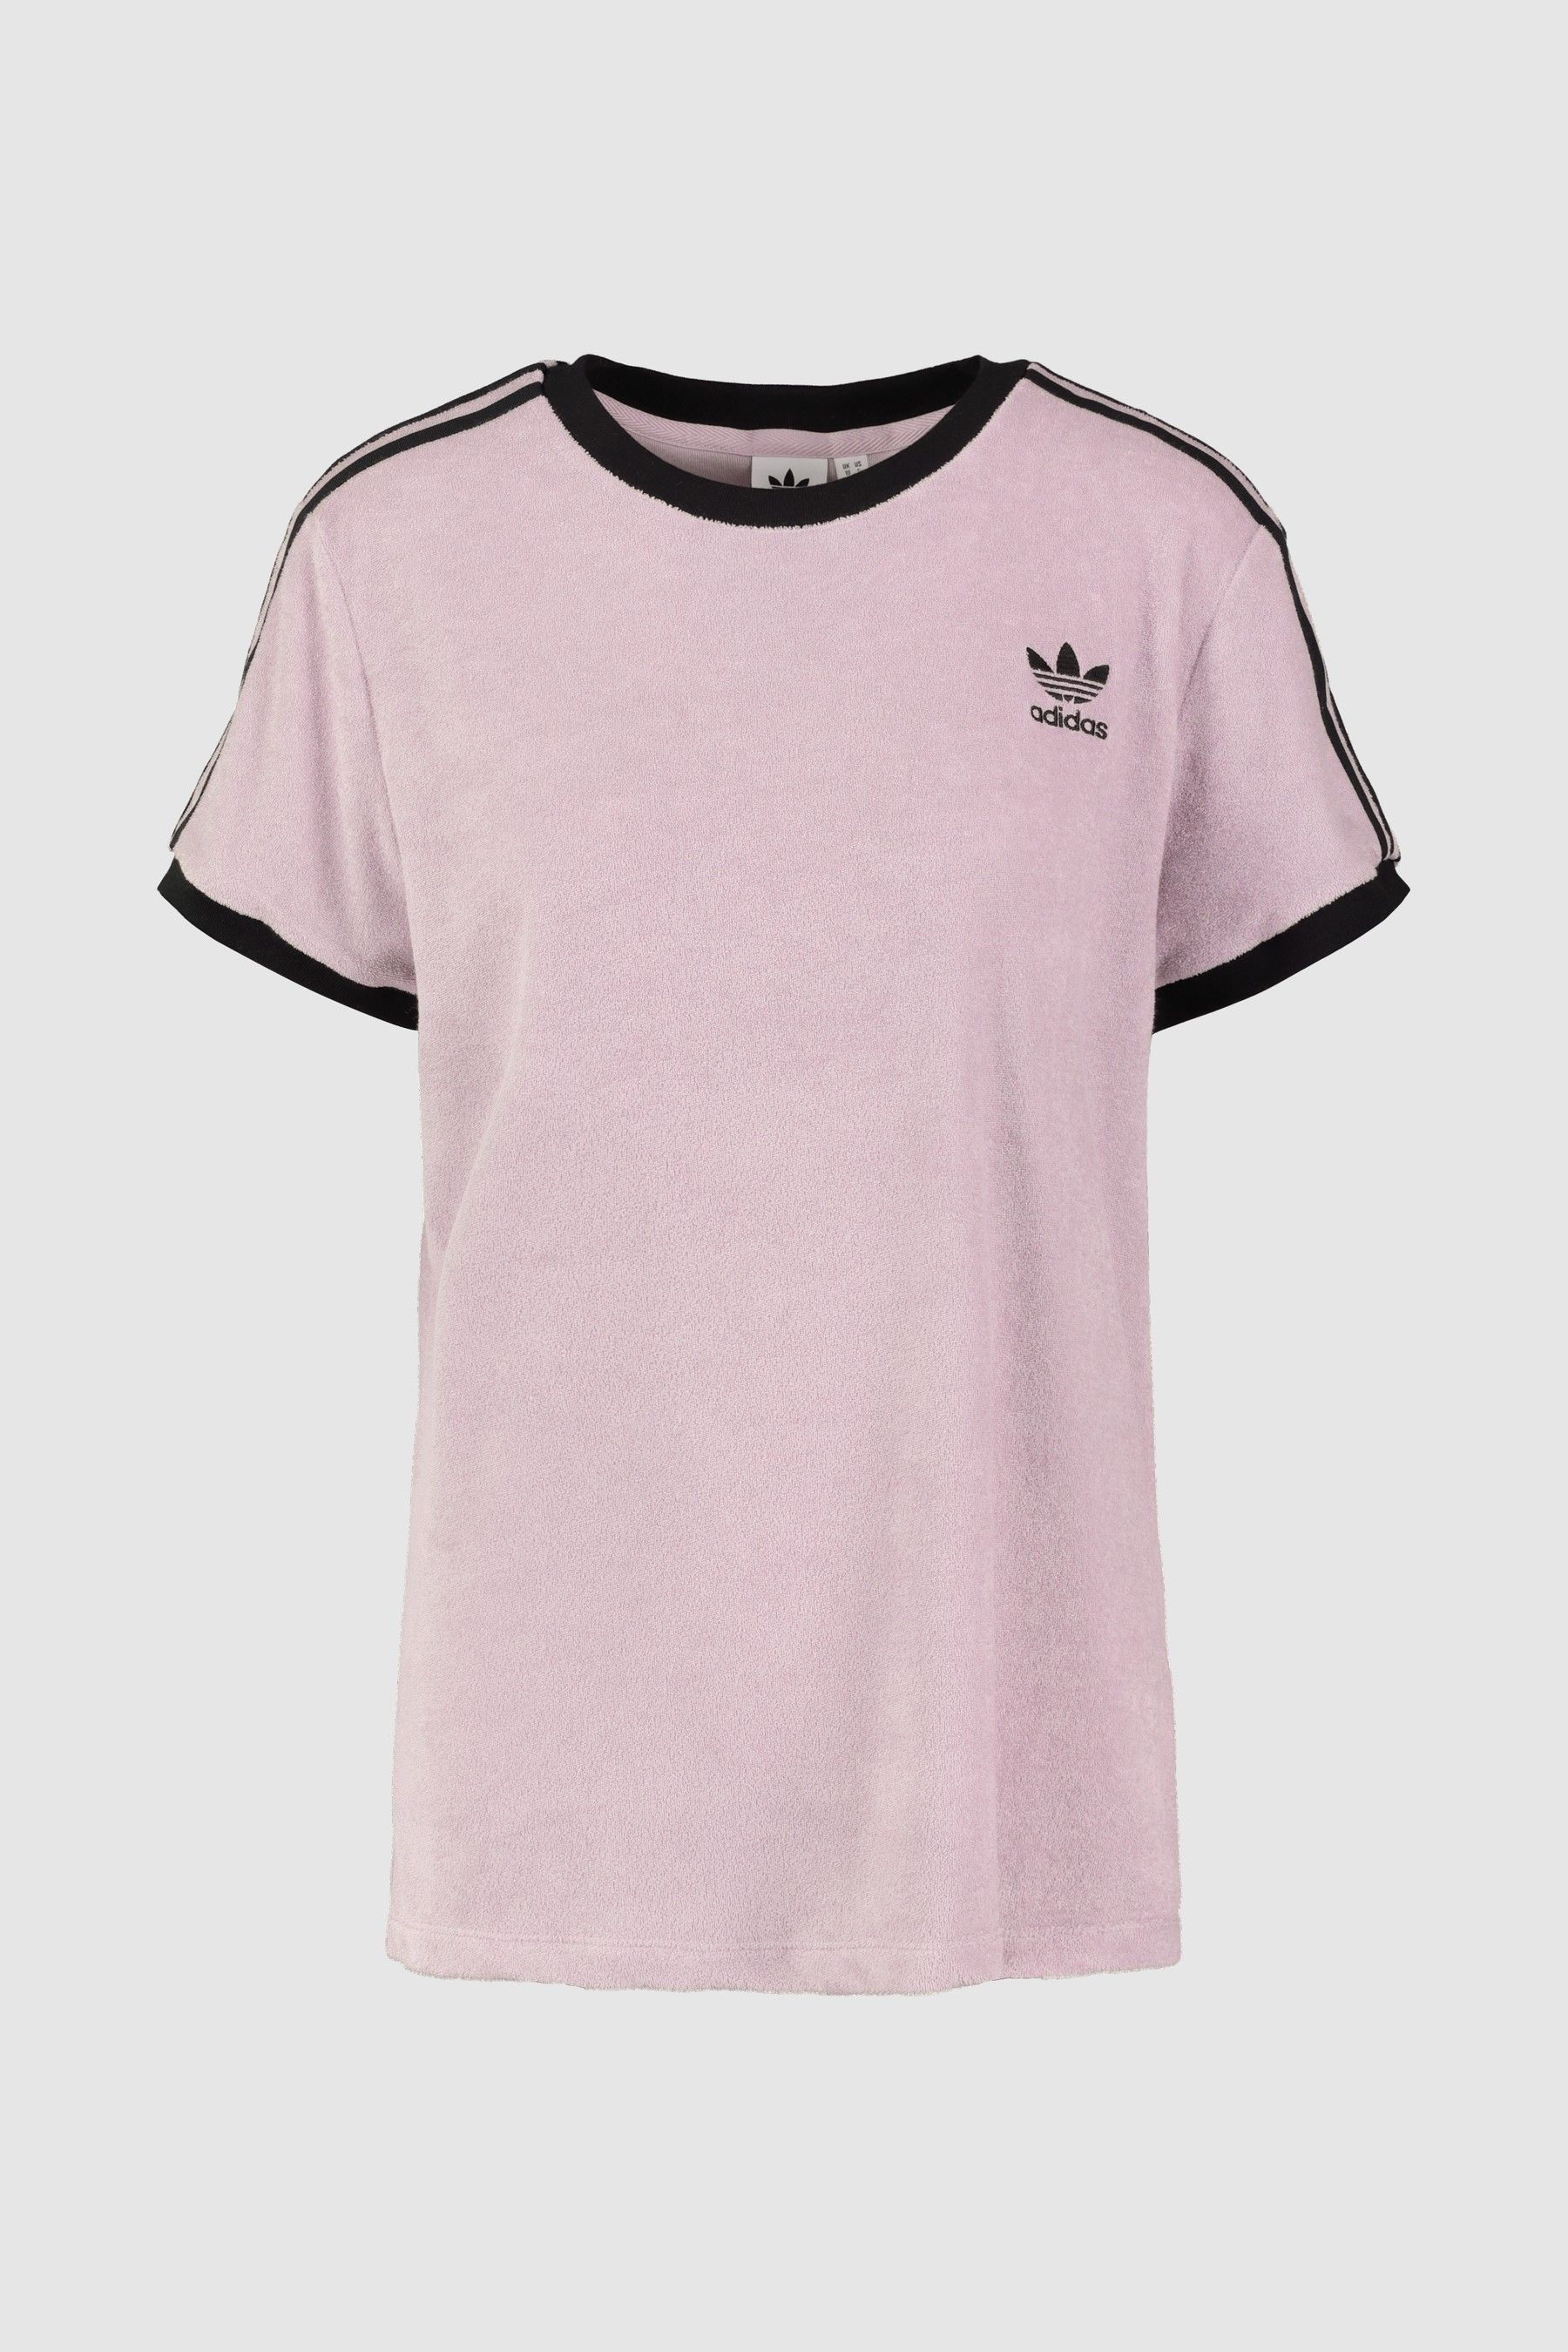 Womens adidas Originals Lilac Soft Vision 3 Stripe Tee